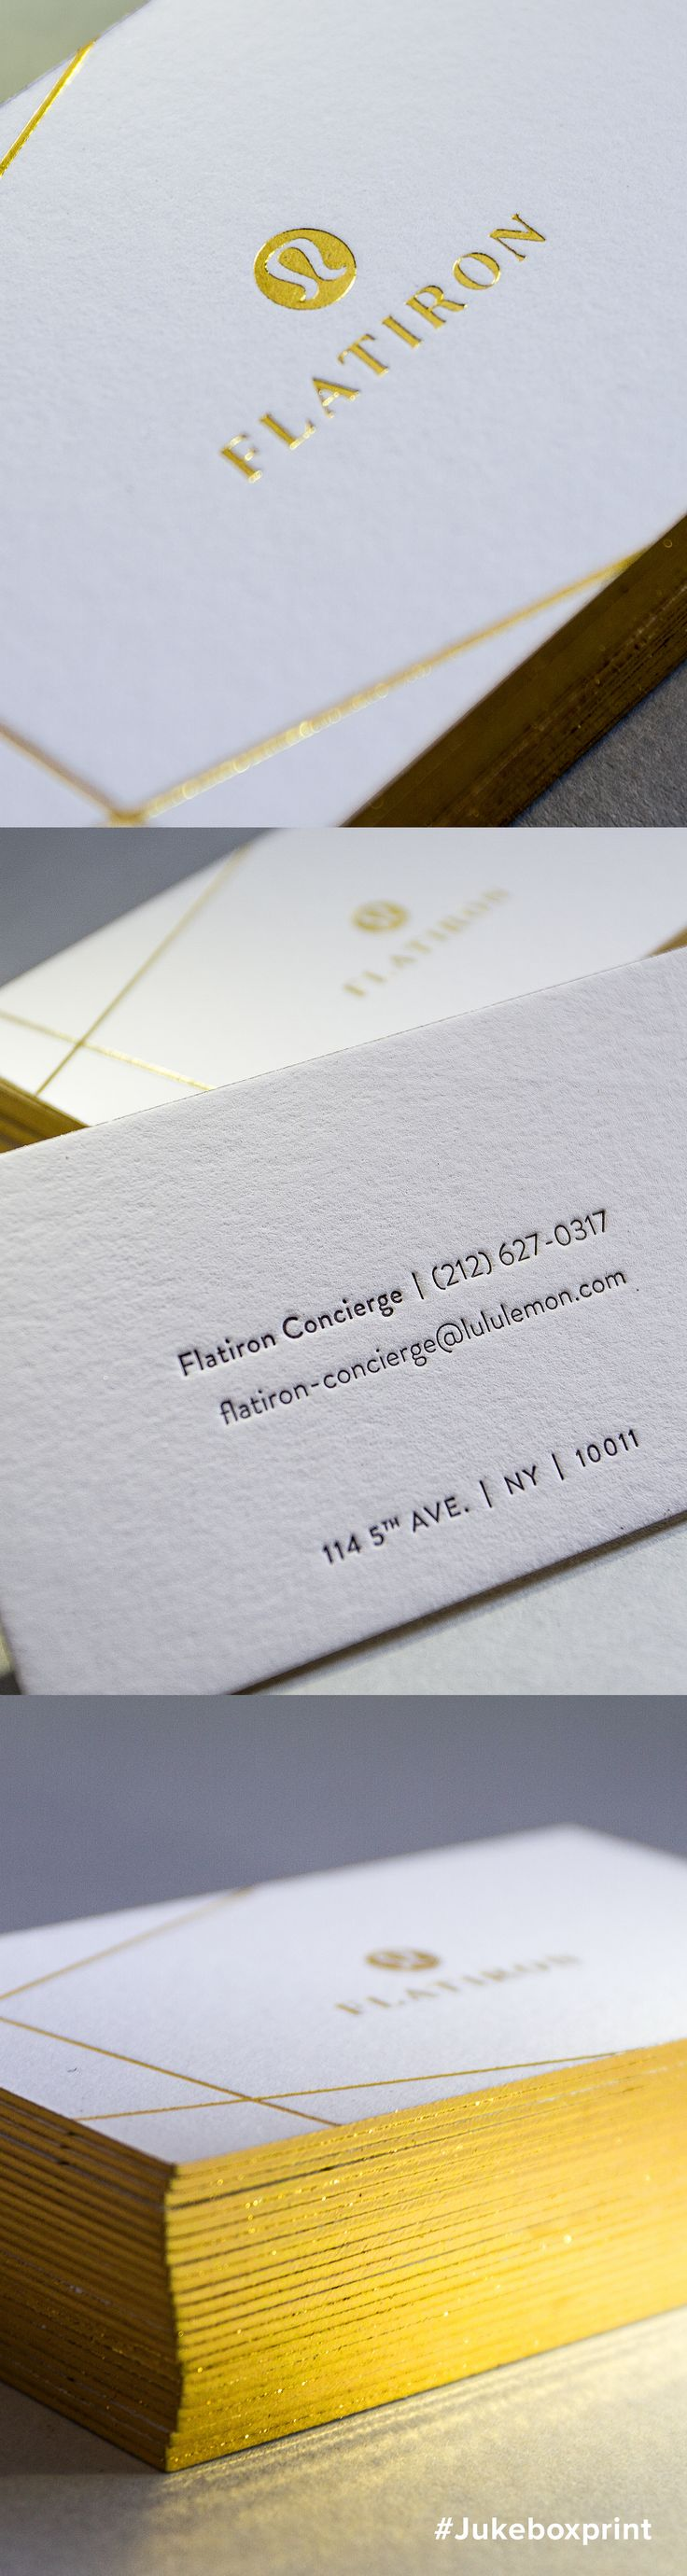 107 best inspiration images on pinterest business card design stunning gold foil and letterpress business cards produced for lululemons flagship flatiron store in nyc reheart Choice Image